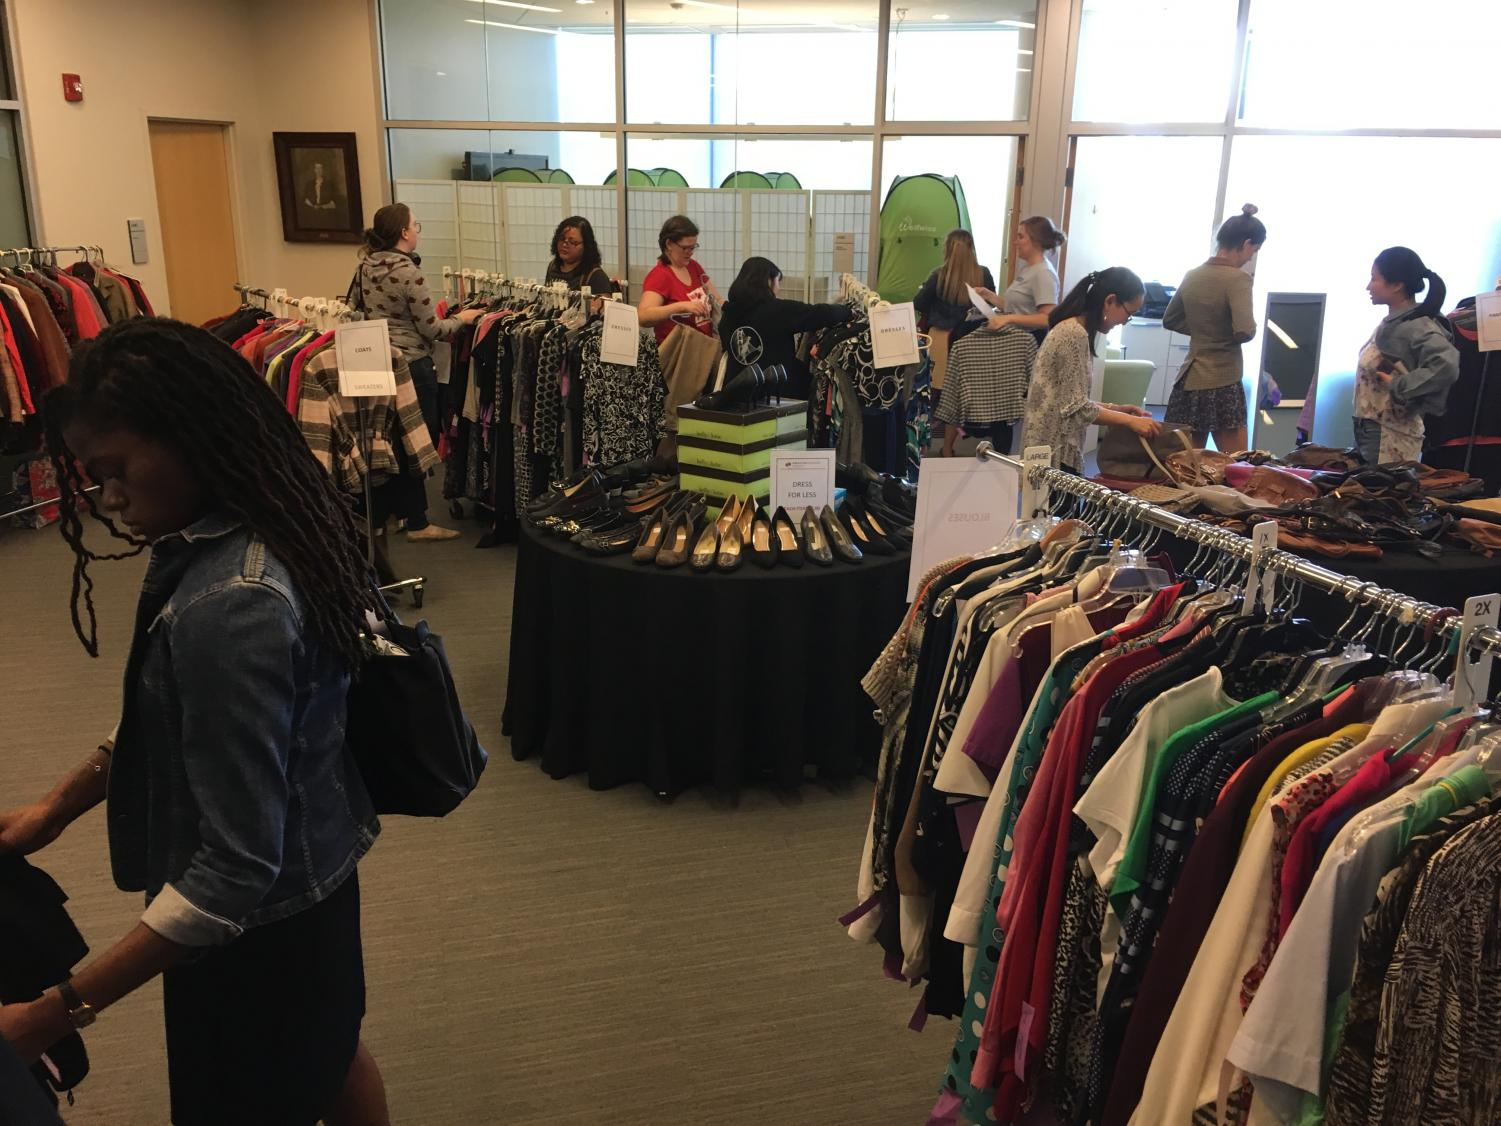 Dress for Less sells business professional clothing to students